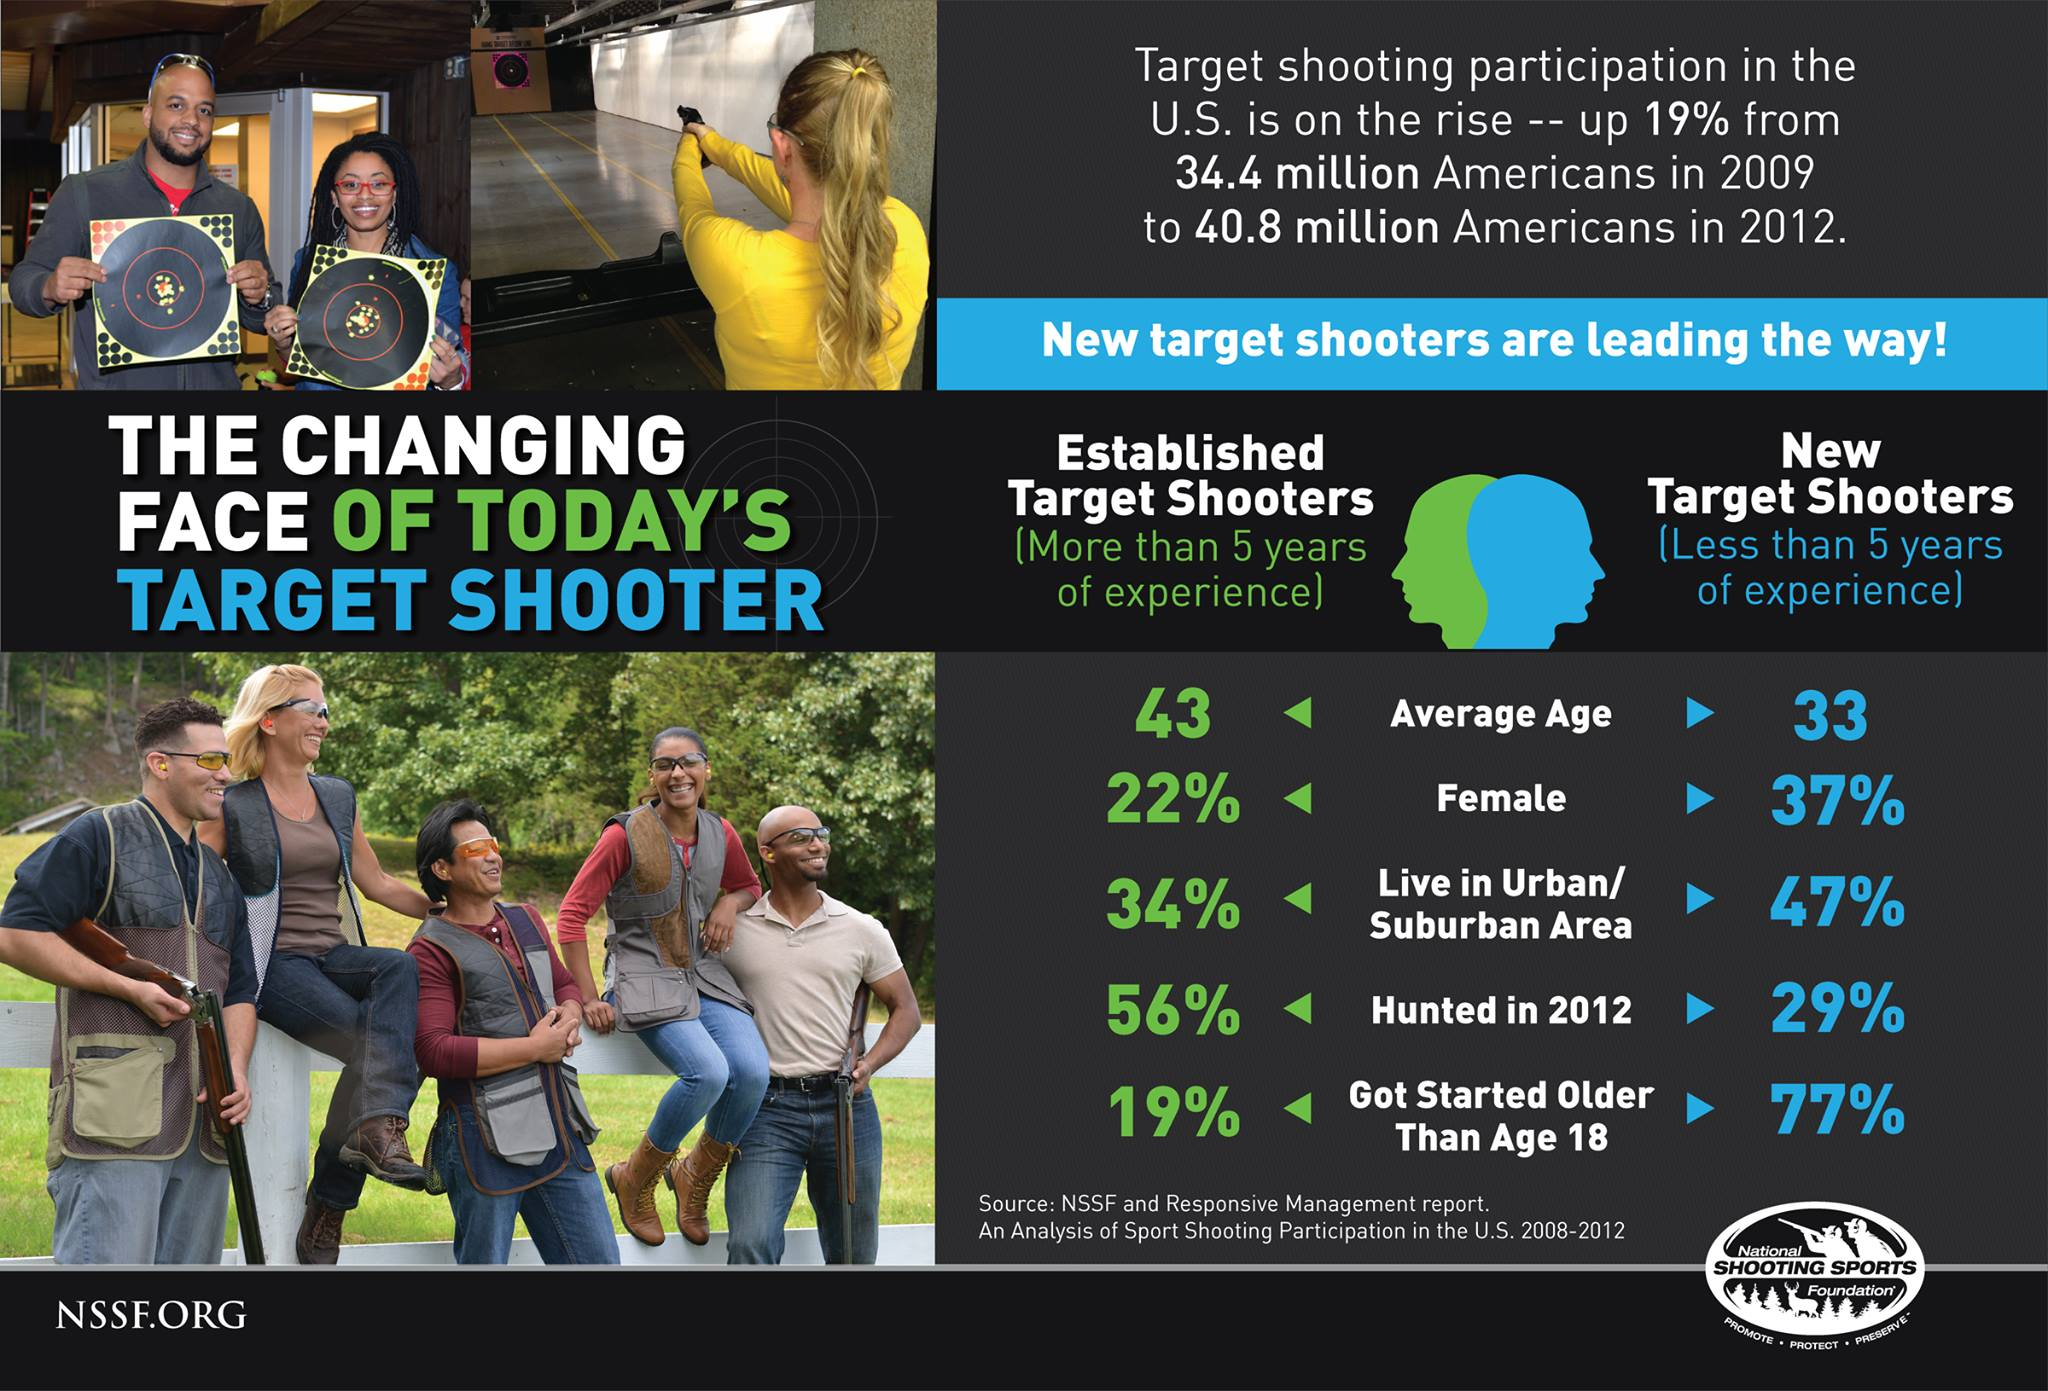 NSSF New Shooters